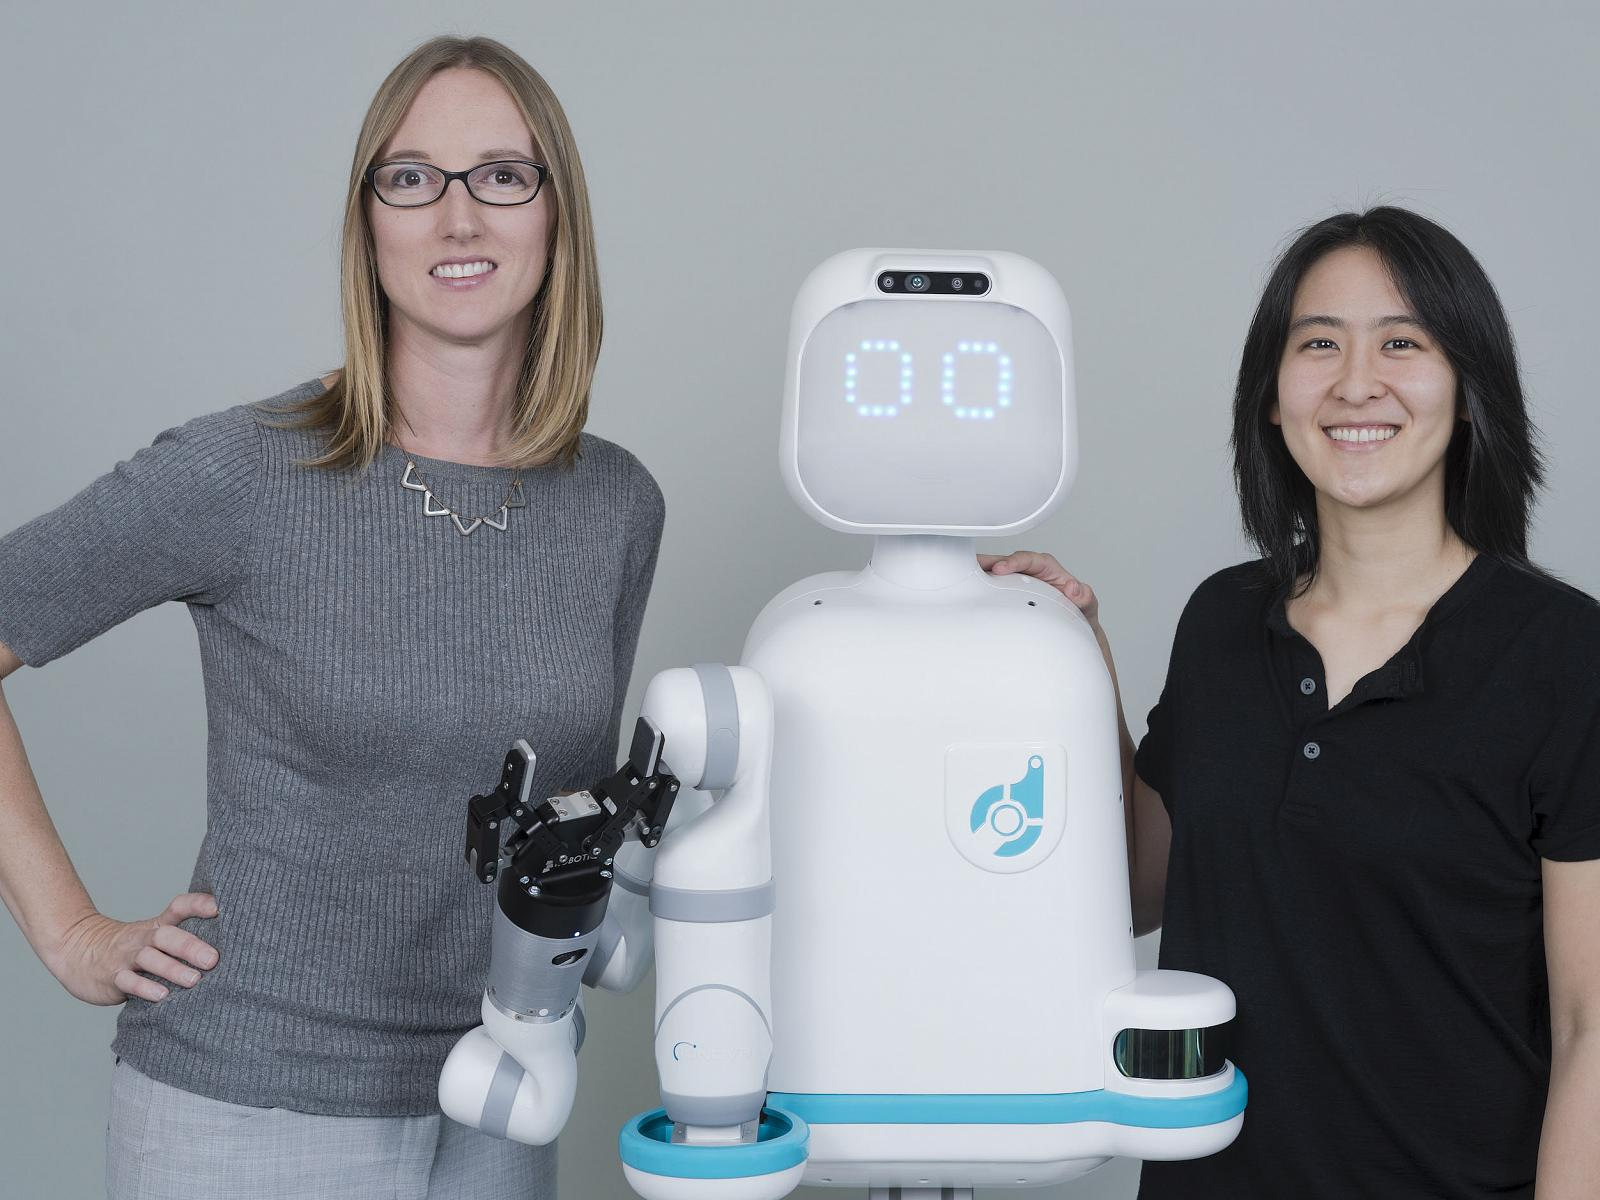 Andrea Thomaz standing next to robot